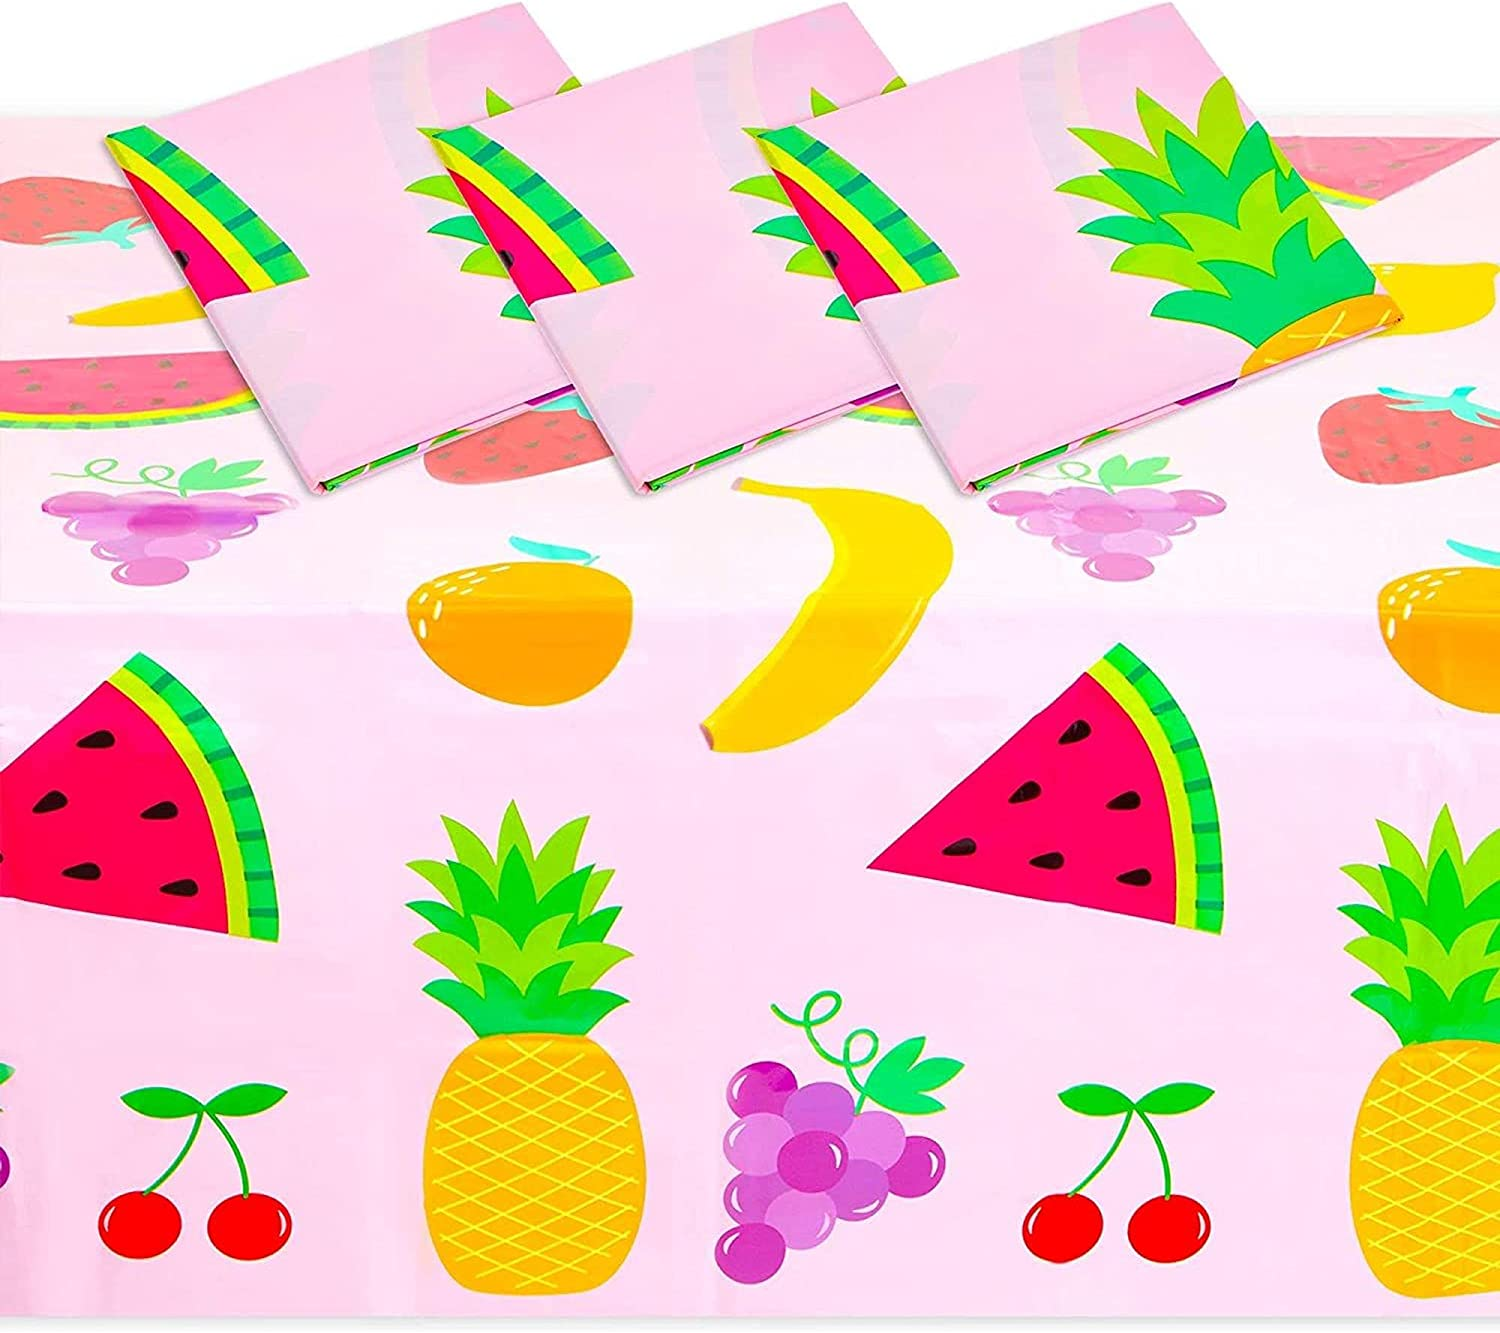 Tablecloth for Two-tti Frutti 2nd Birthday Party Decorations (Pink, 54 x 108 in, 3 Pack)